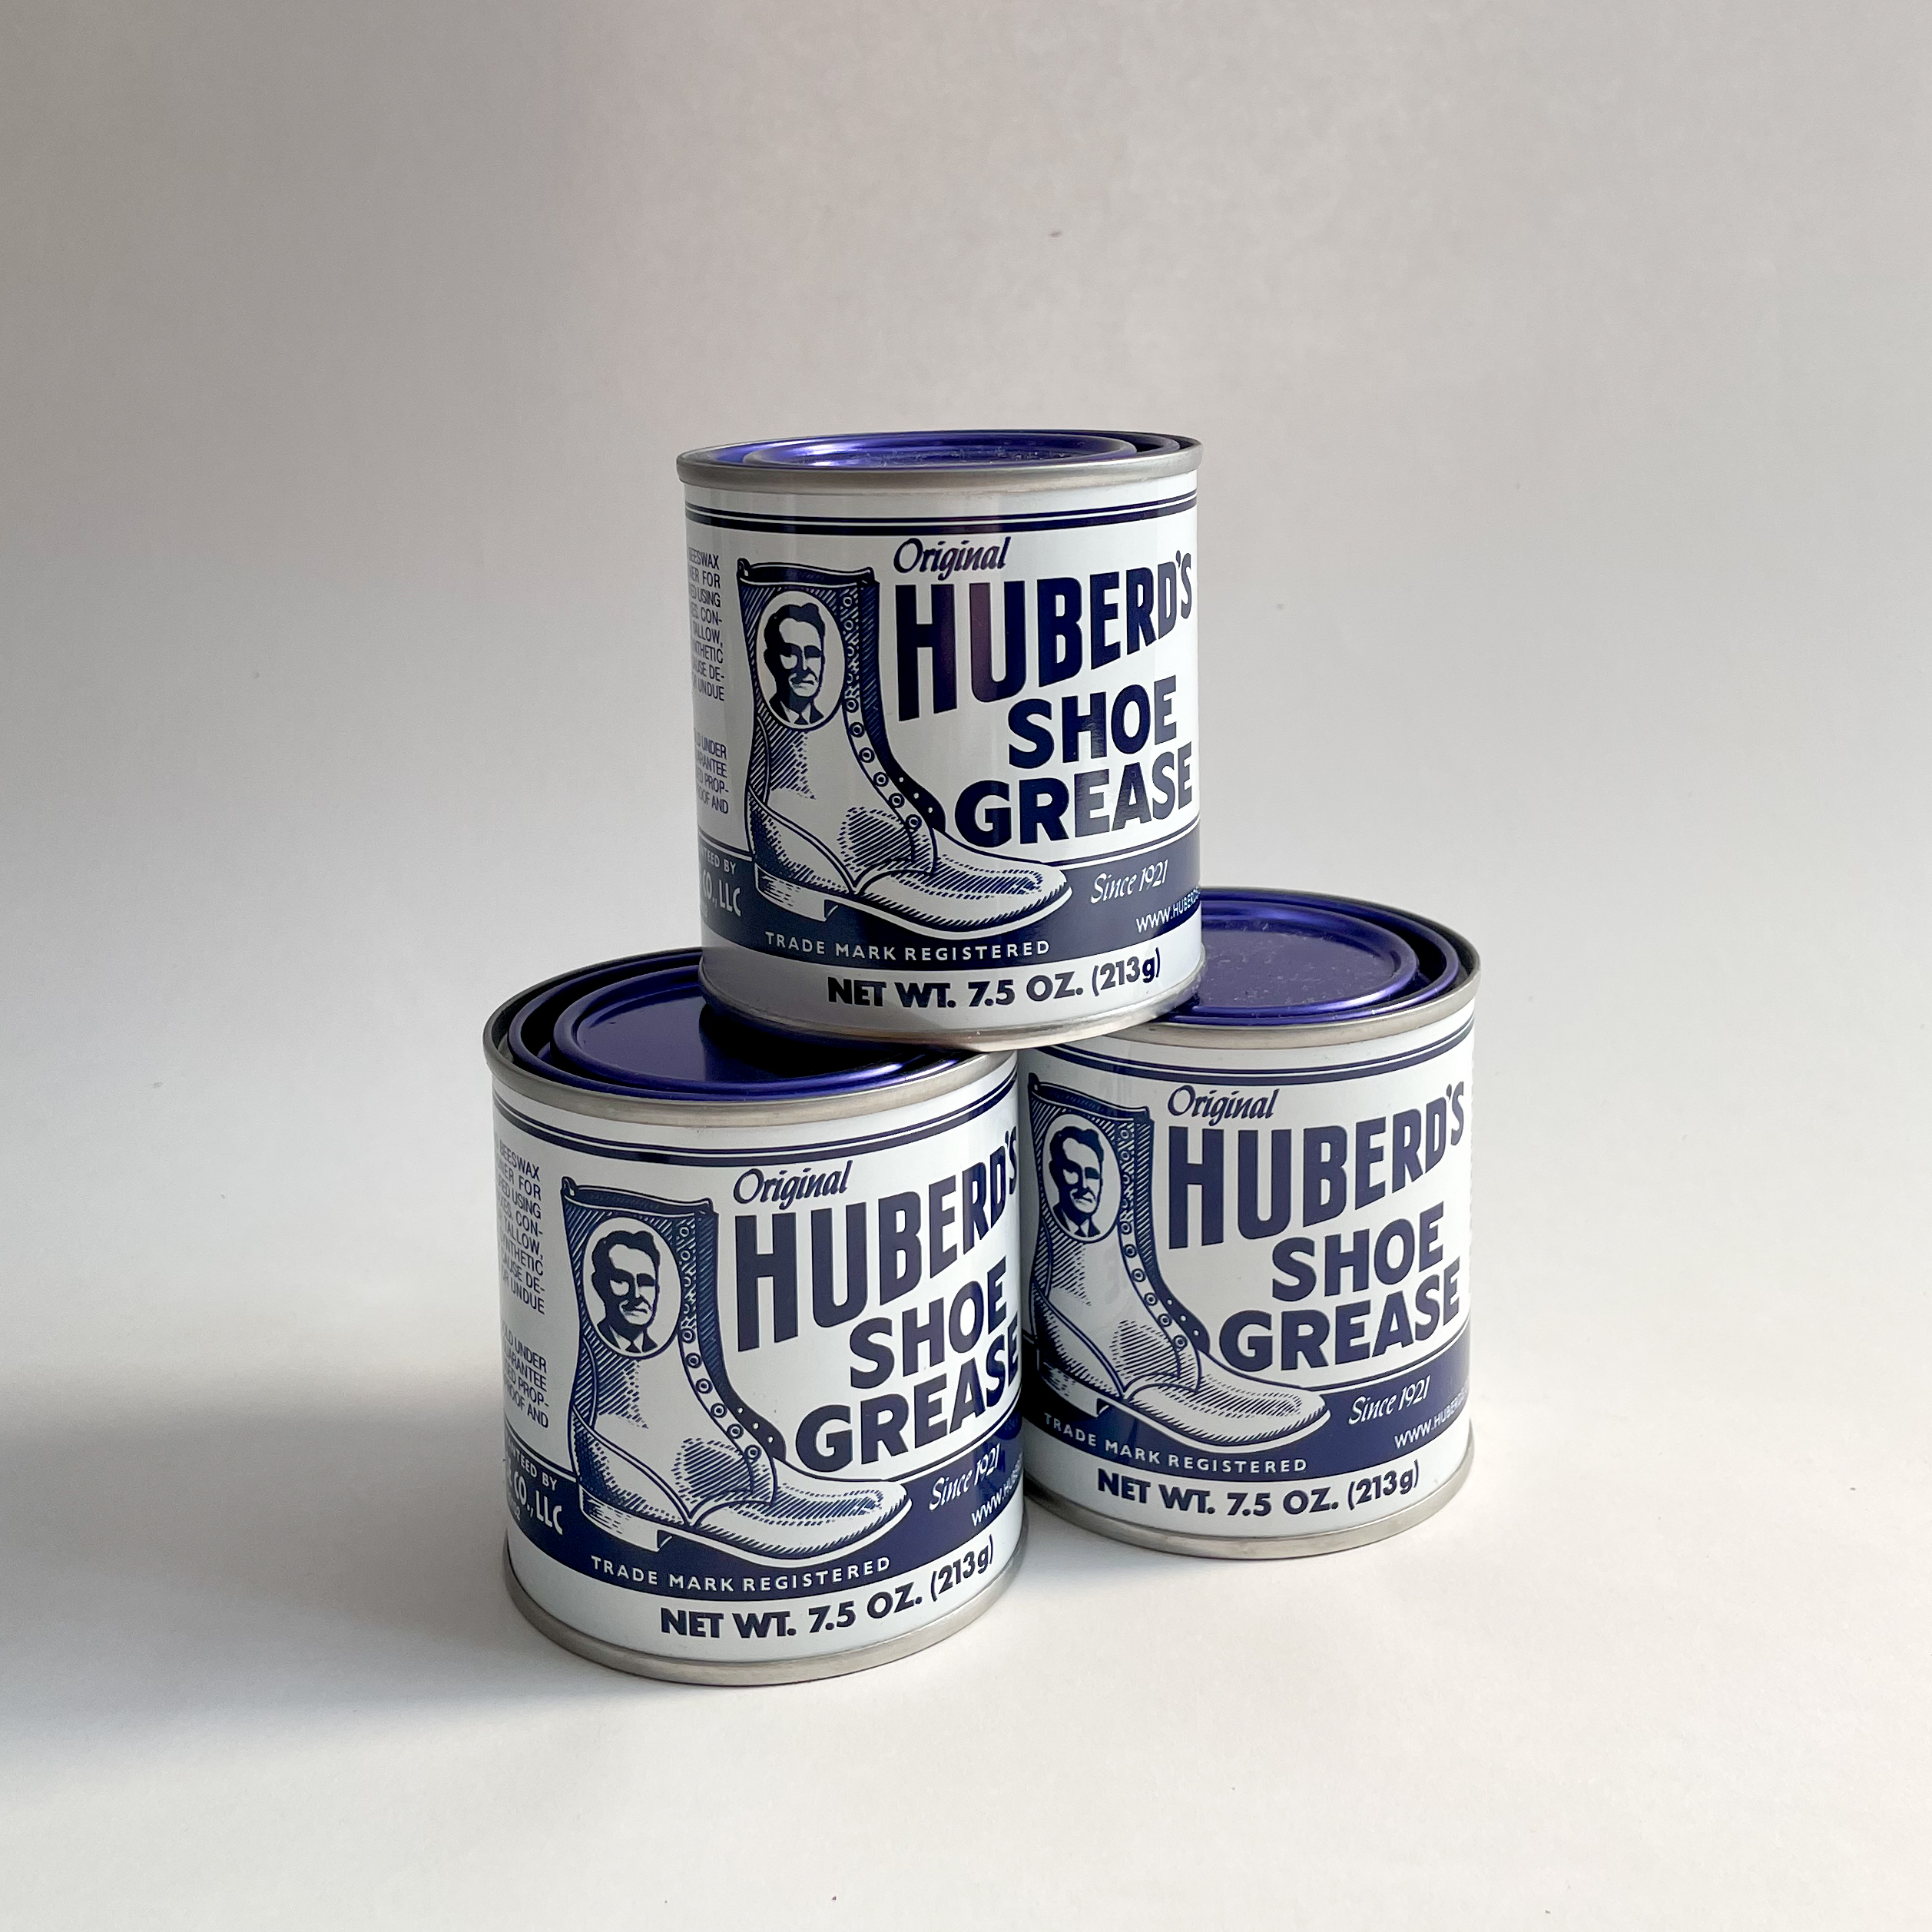 Three Huberd's Shoe Grease cans in a pyramid